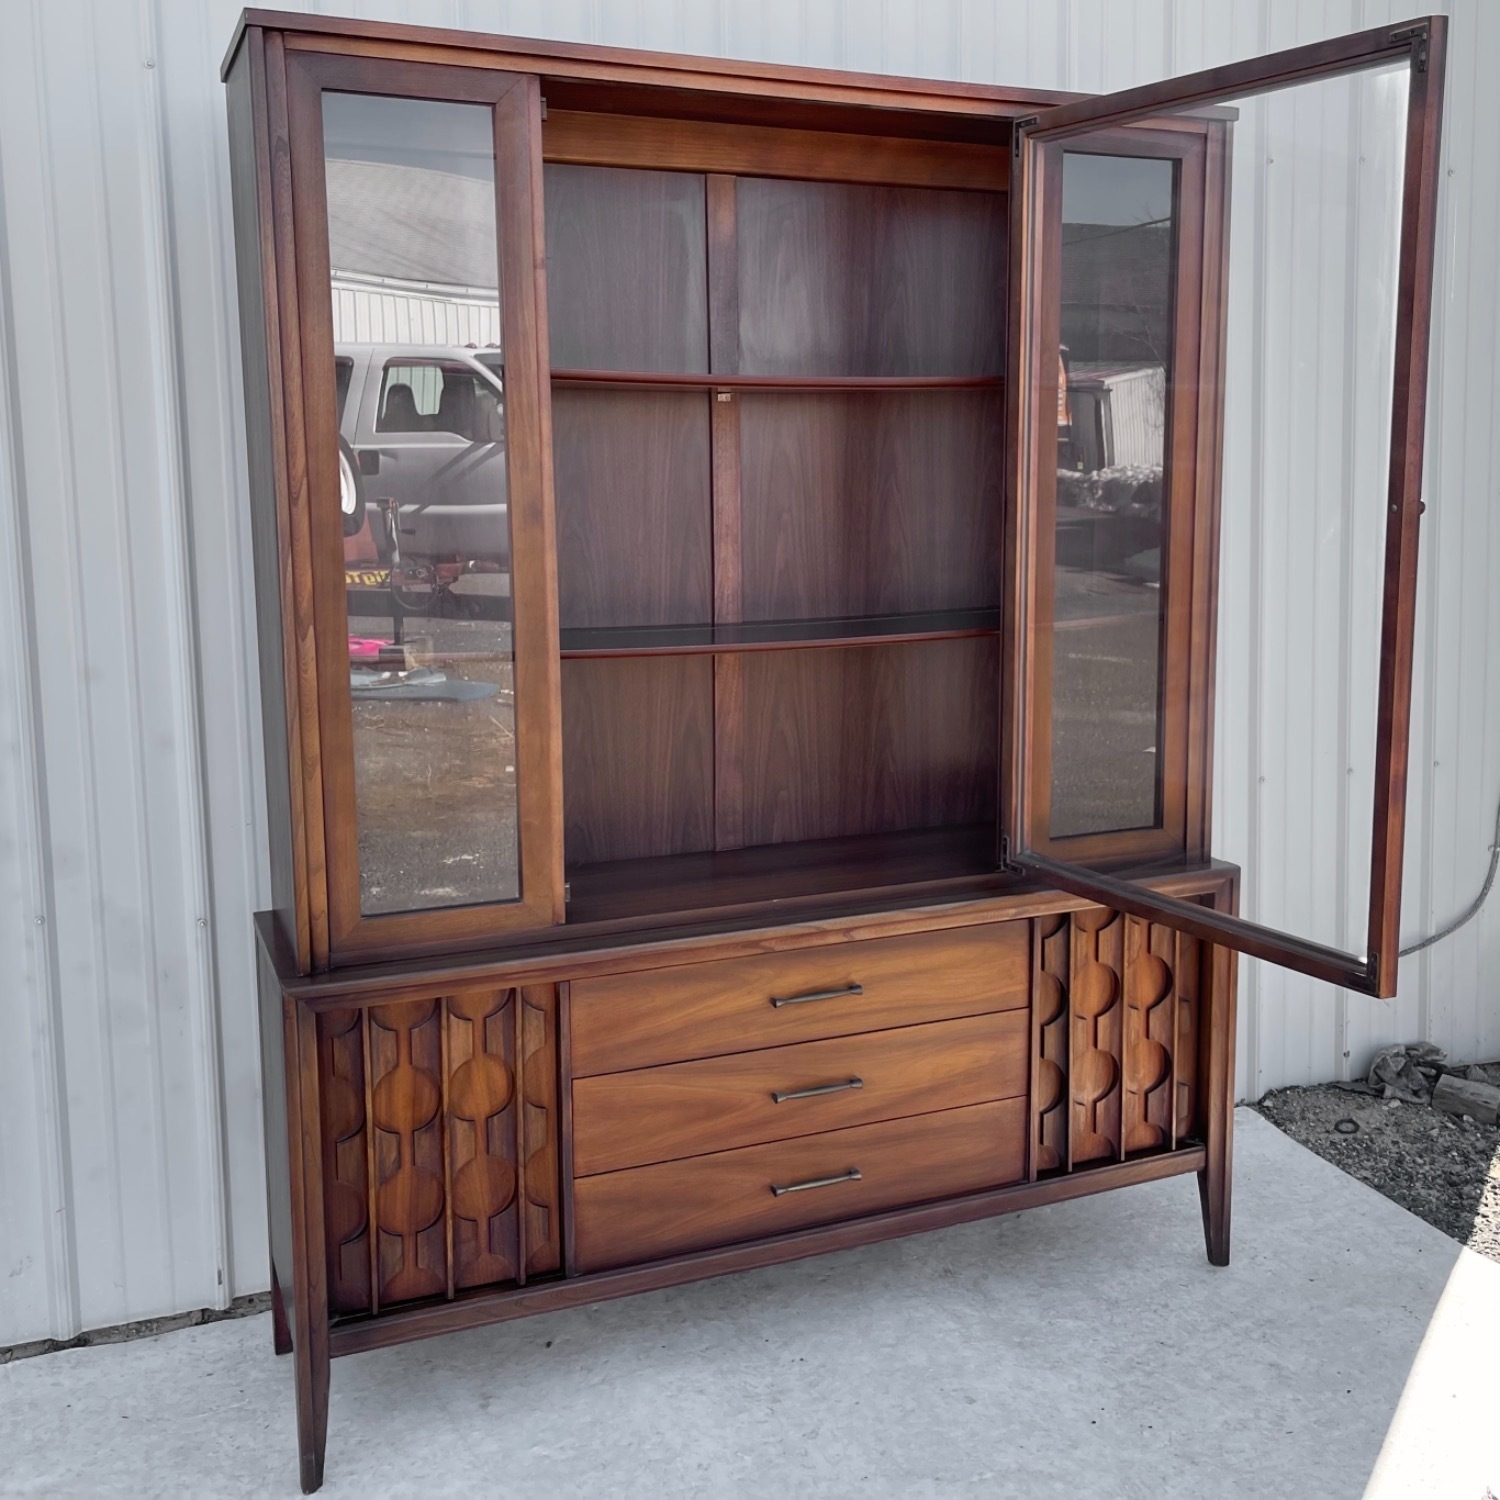 Mid-Century Modern Sideboard With Cabinet - image-3